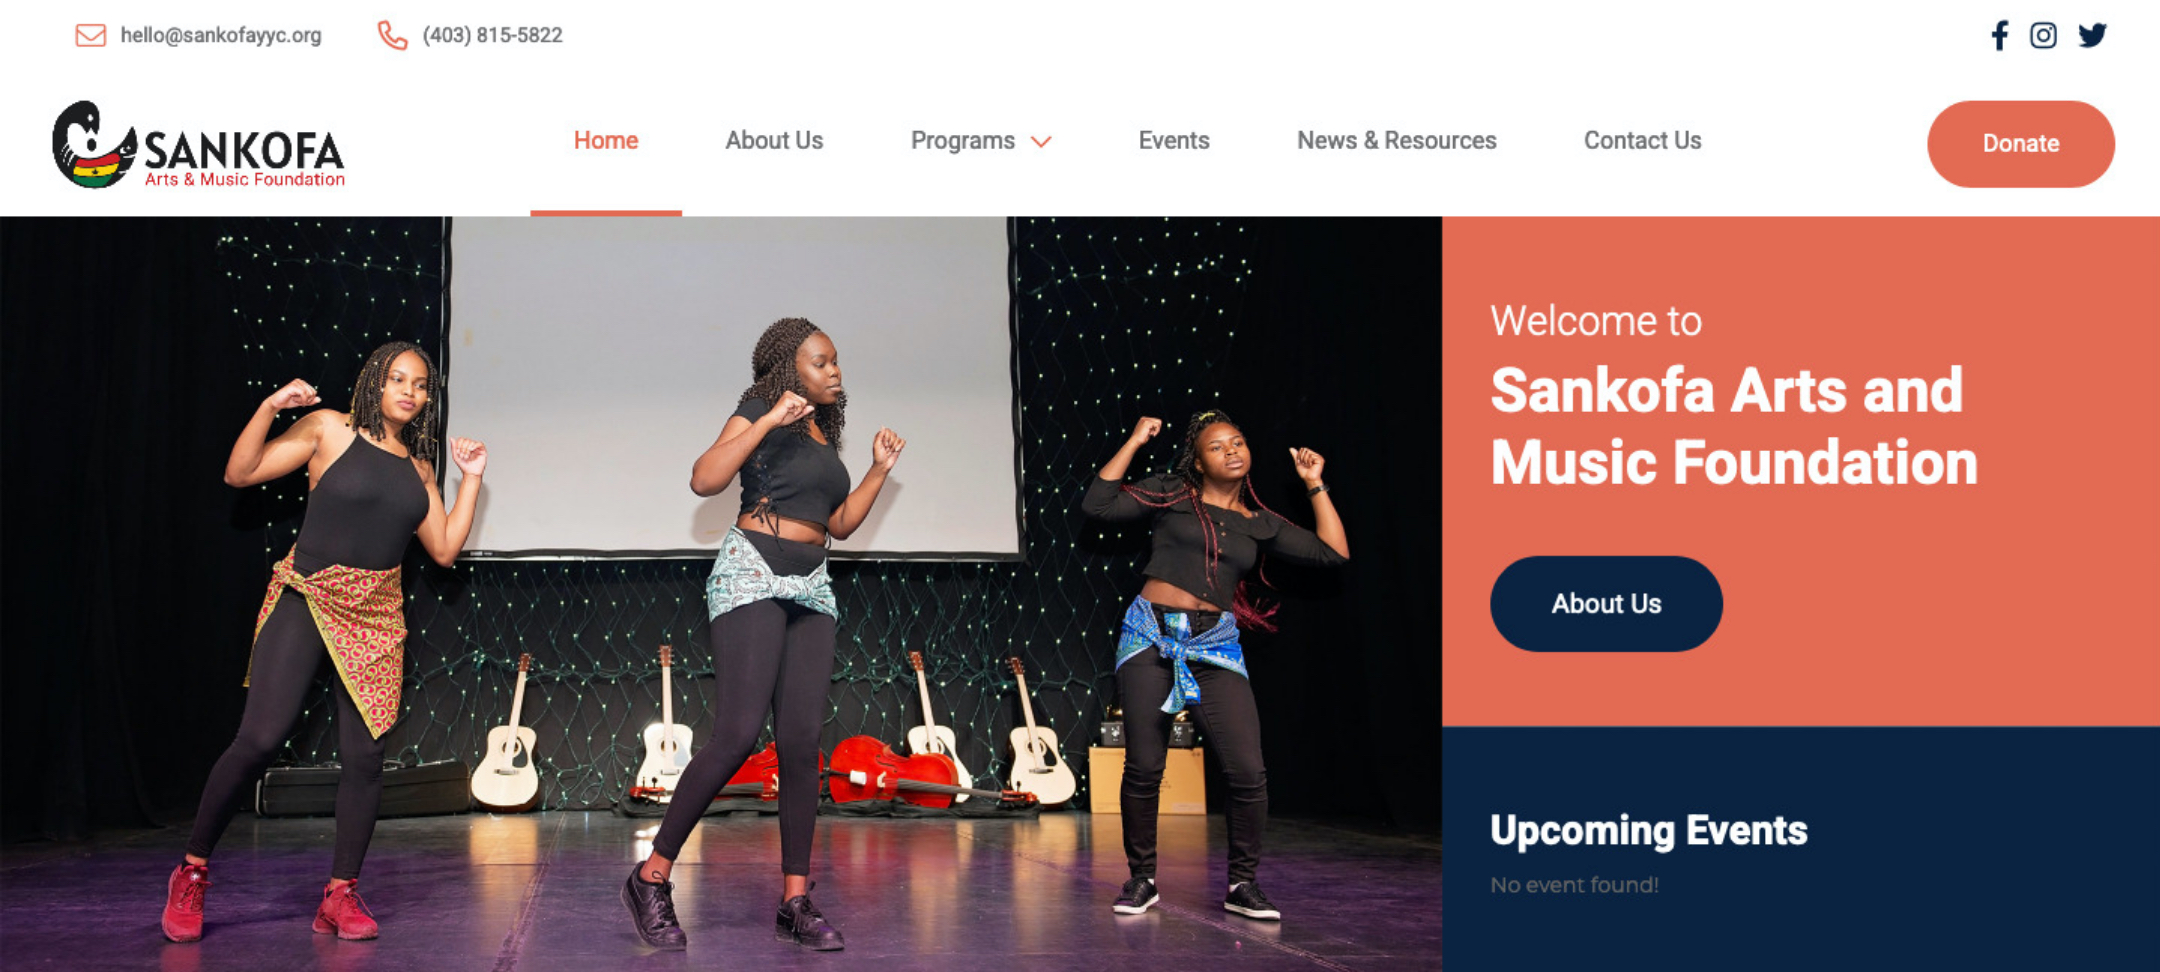 sankofa homepage web design